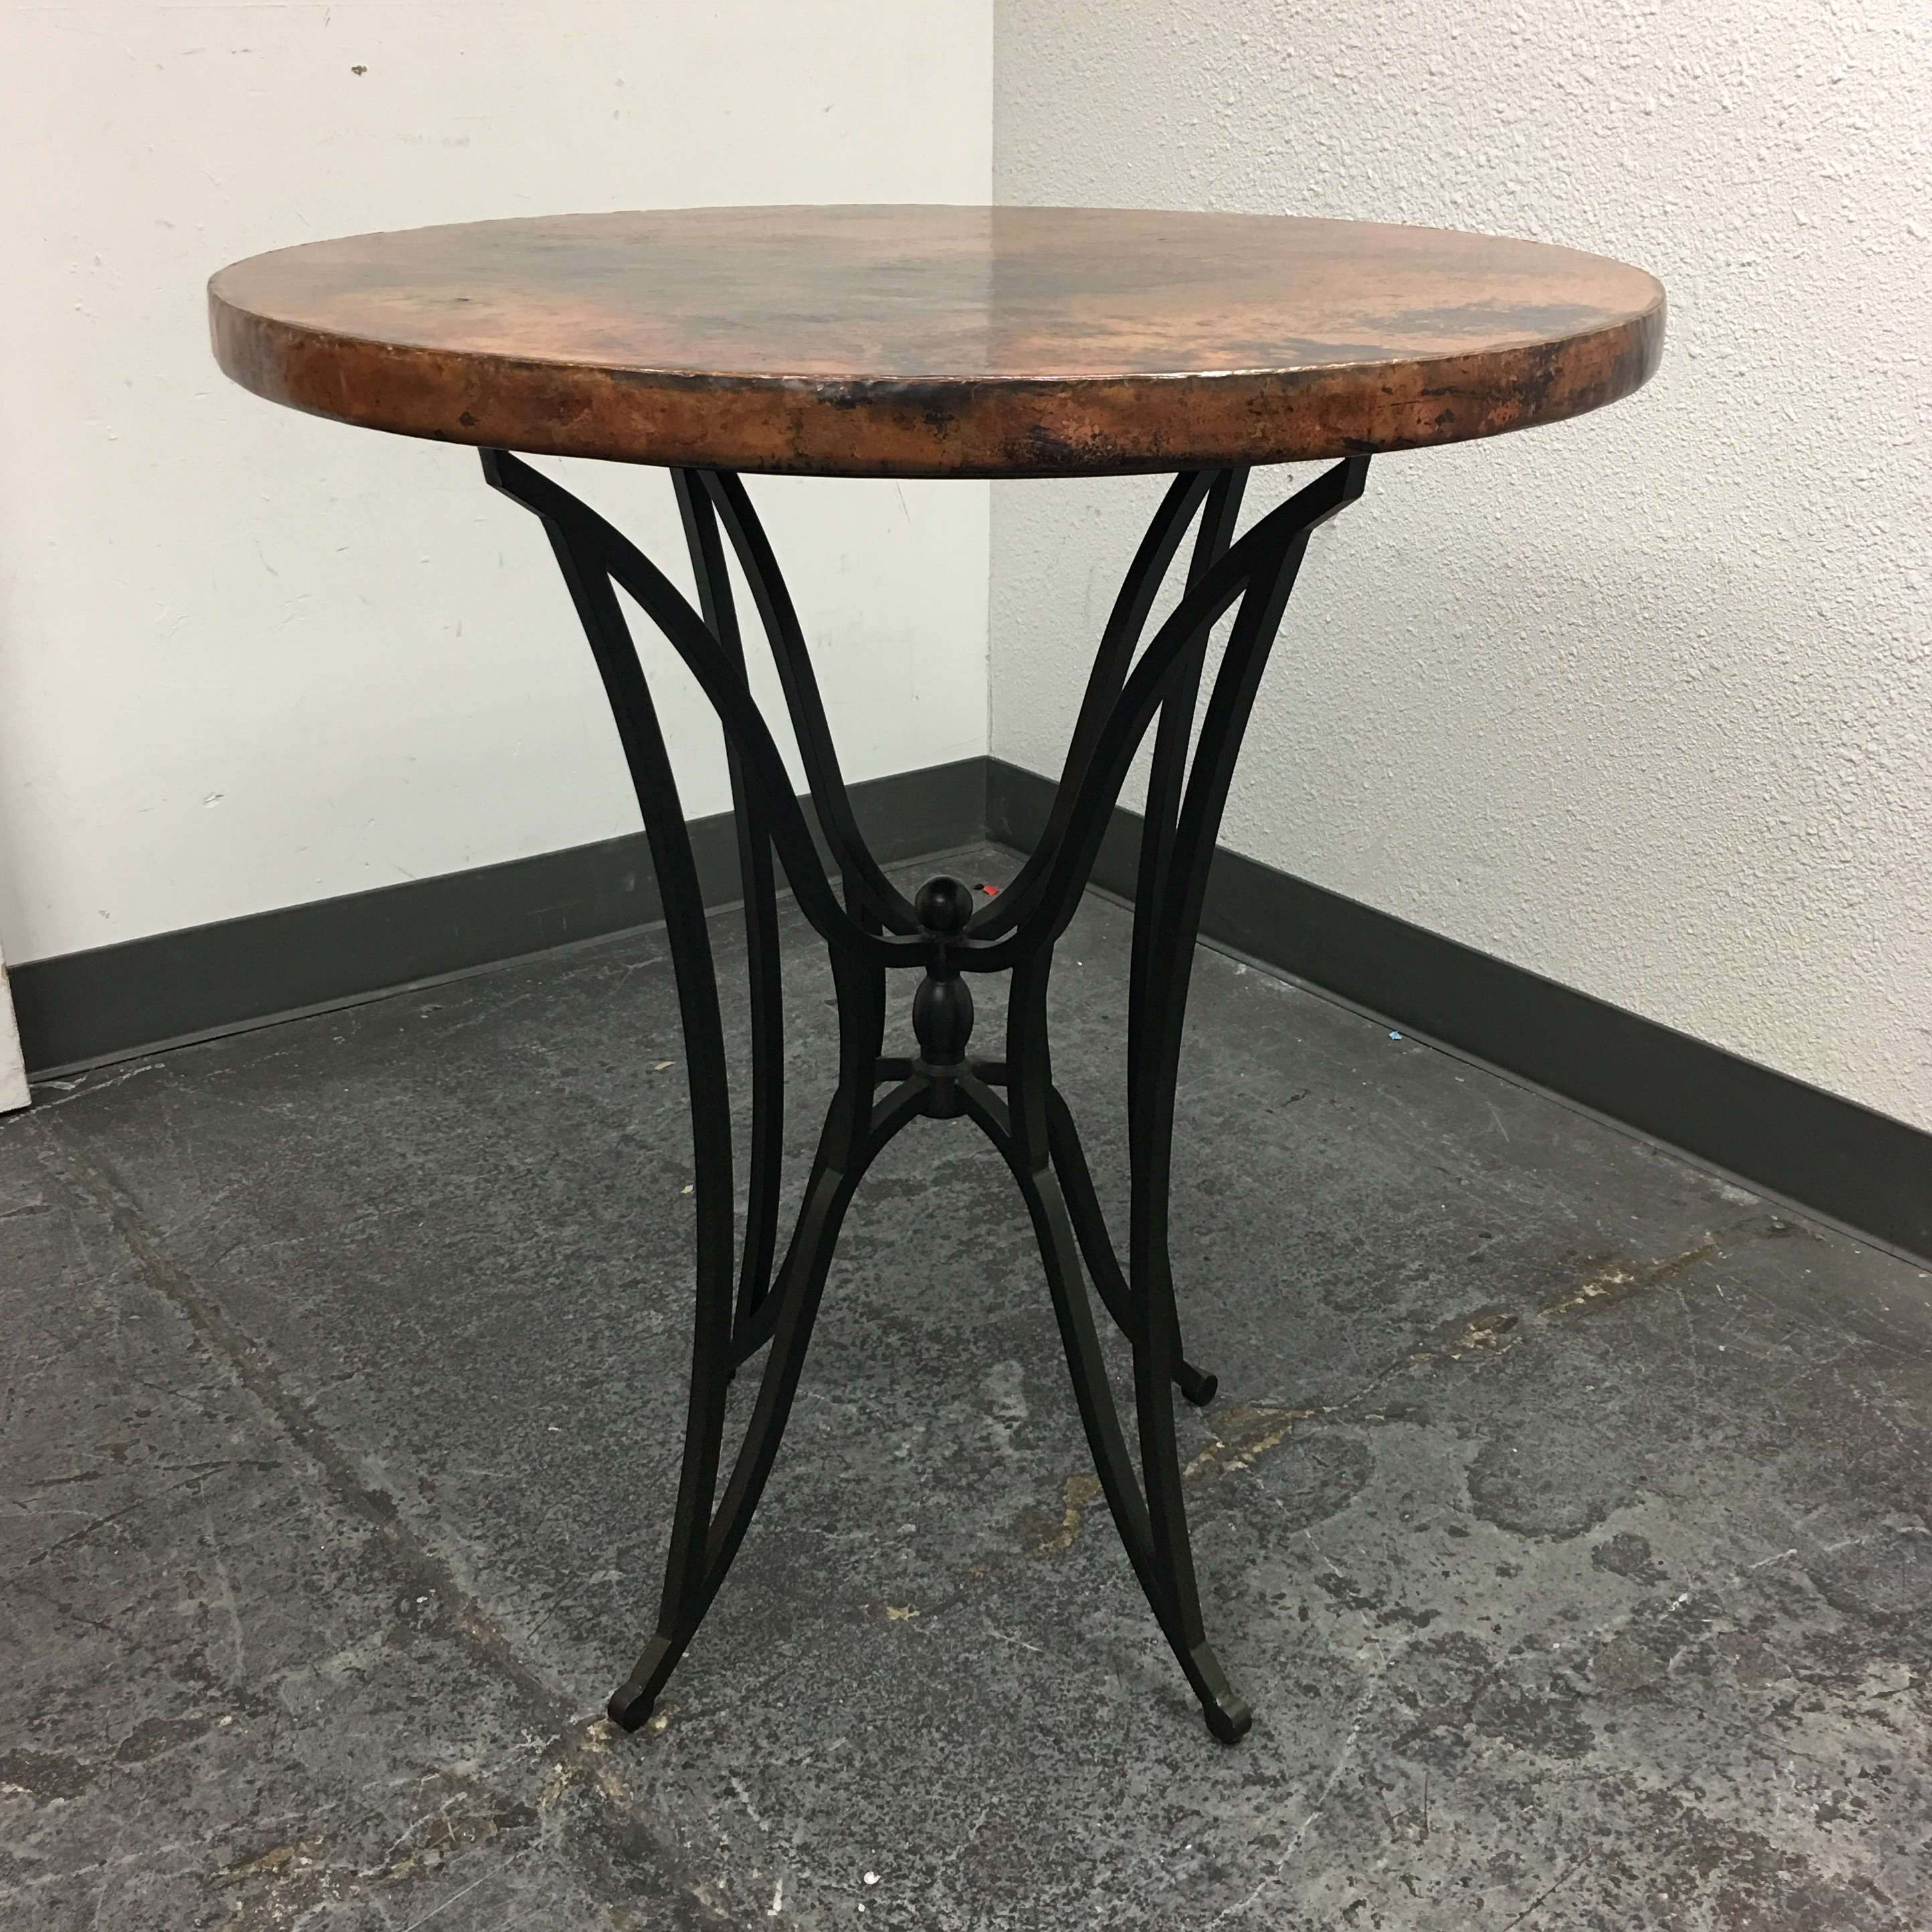 arhaus round dining table arhaus bar table amp barstools chairish 870